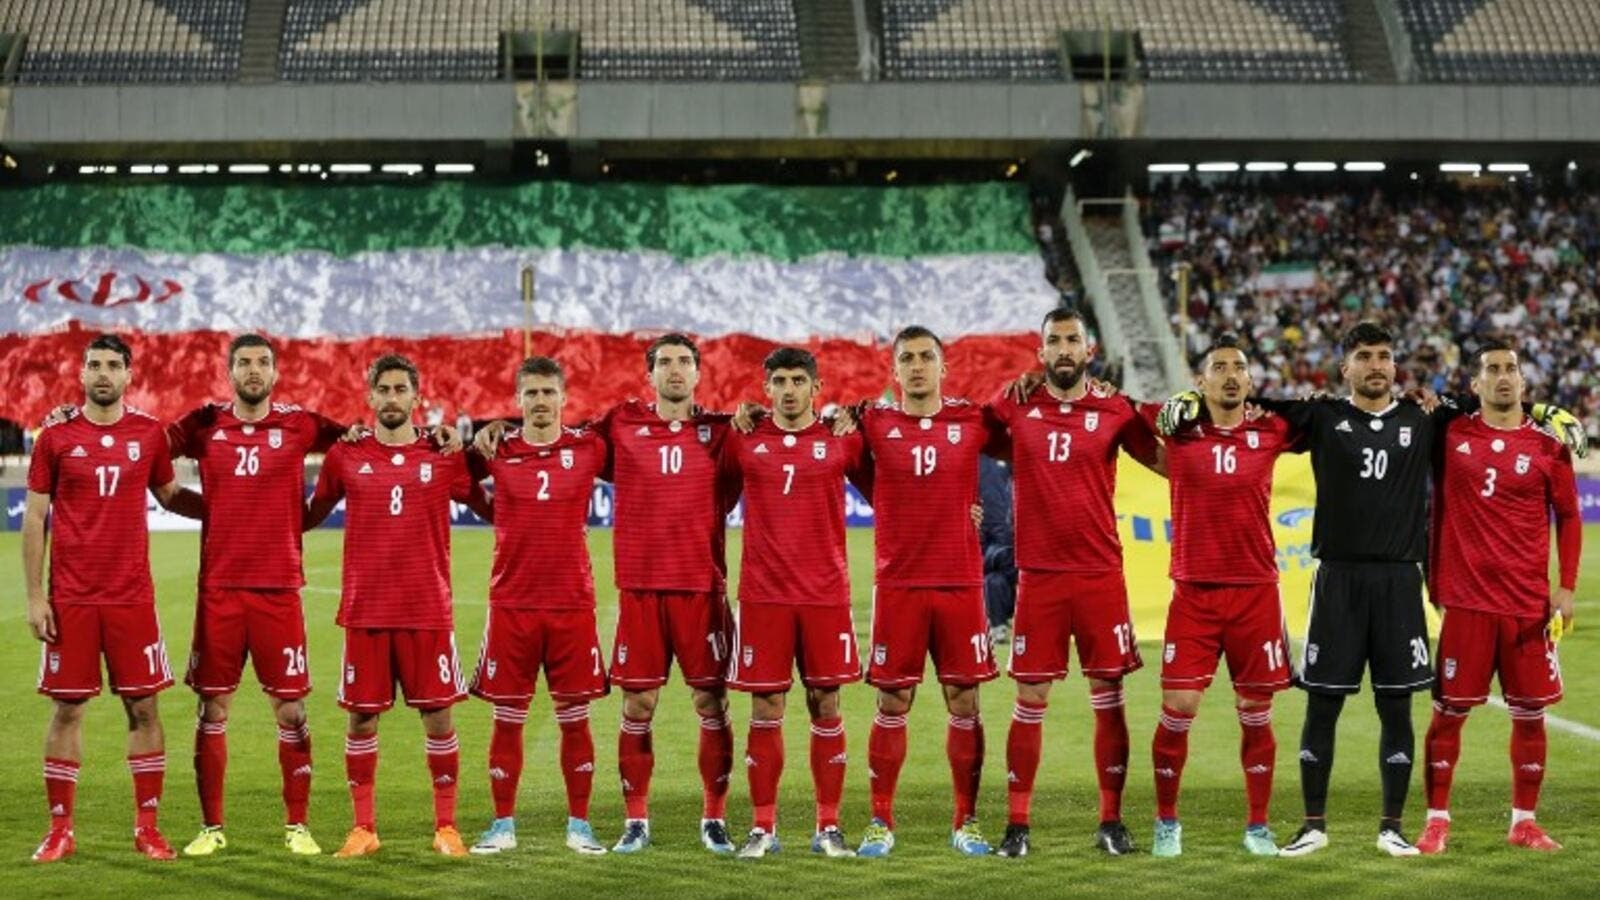 The Iran men's national football team